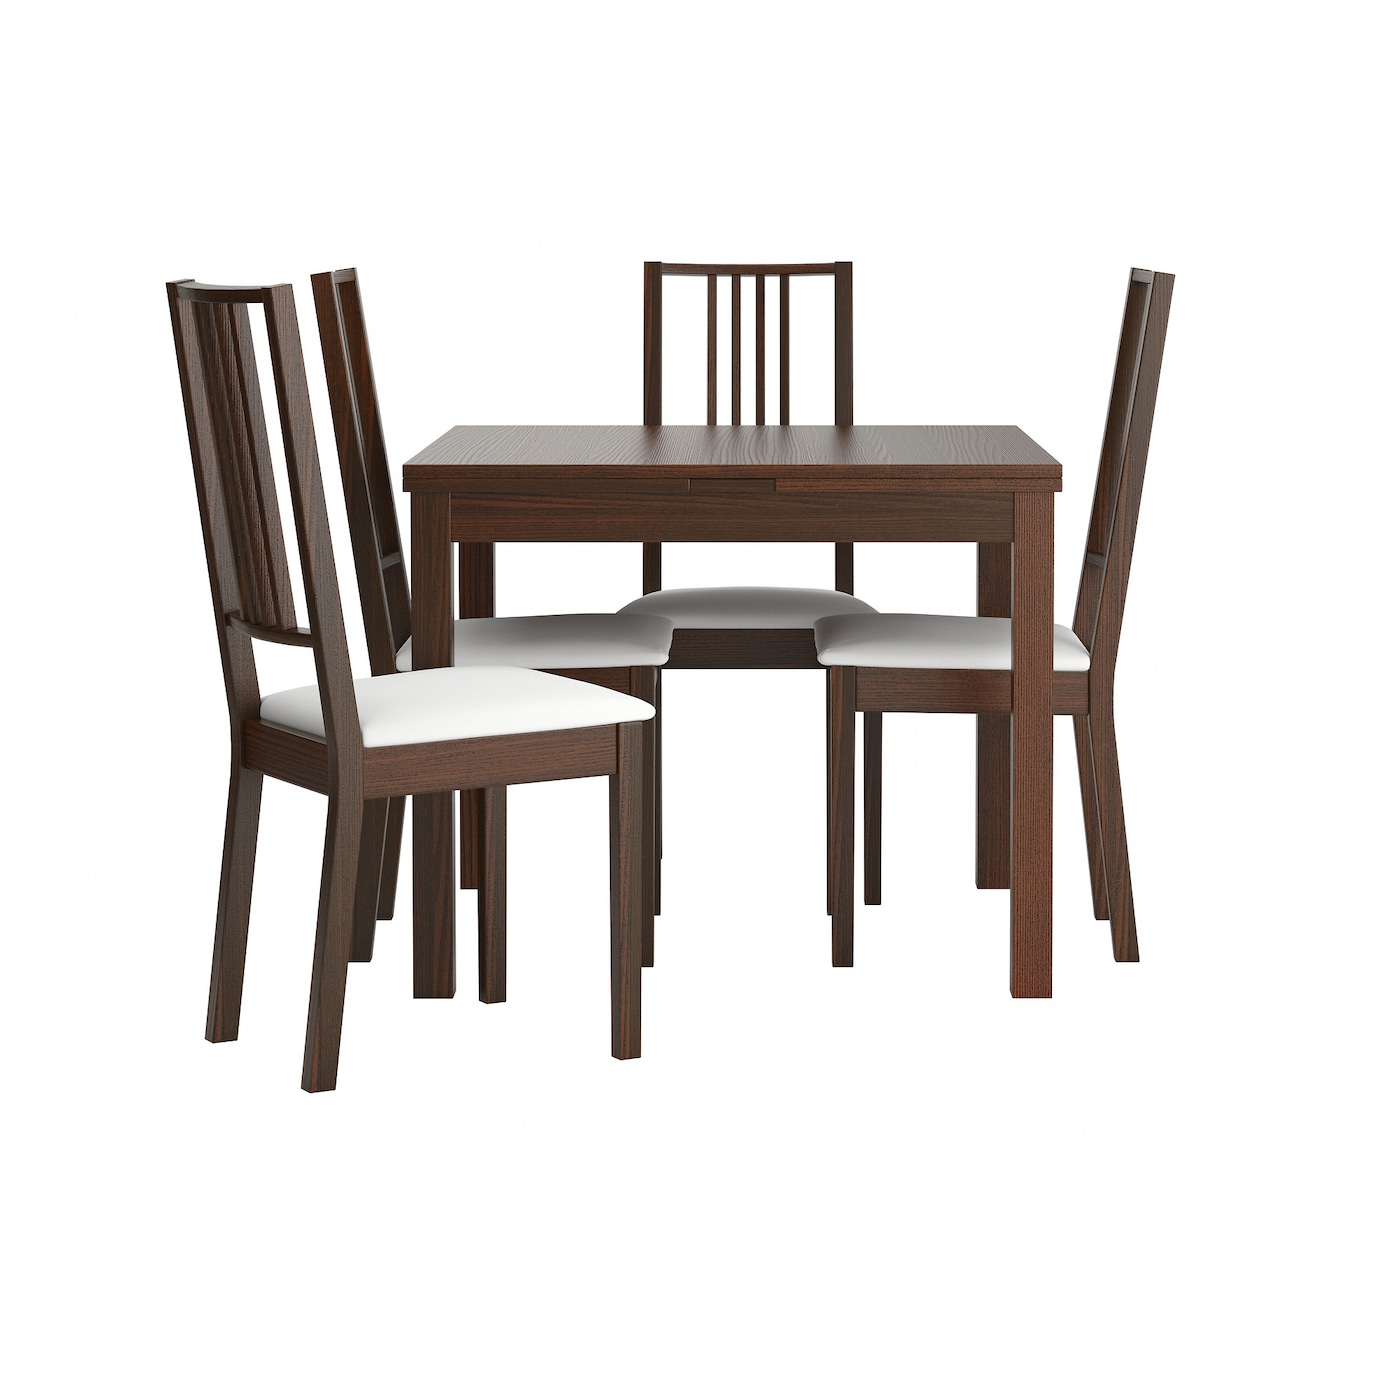 B rje bjursta table and 4 chairs brown gobo white 90 cm ikea for Ikea dining table and chairs set